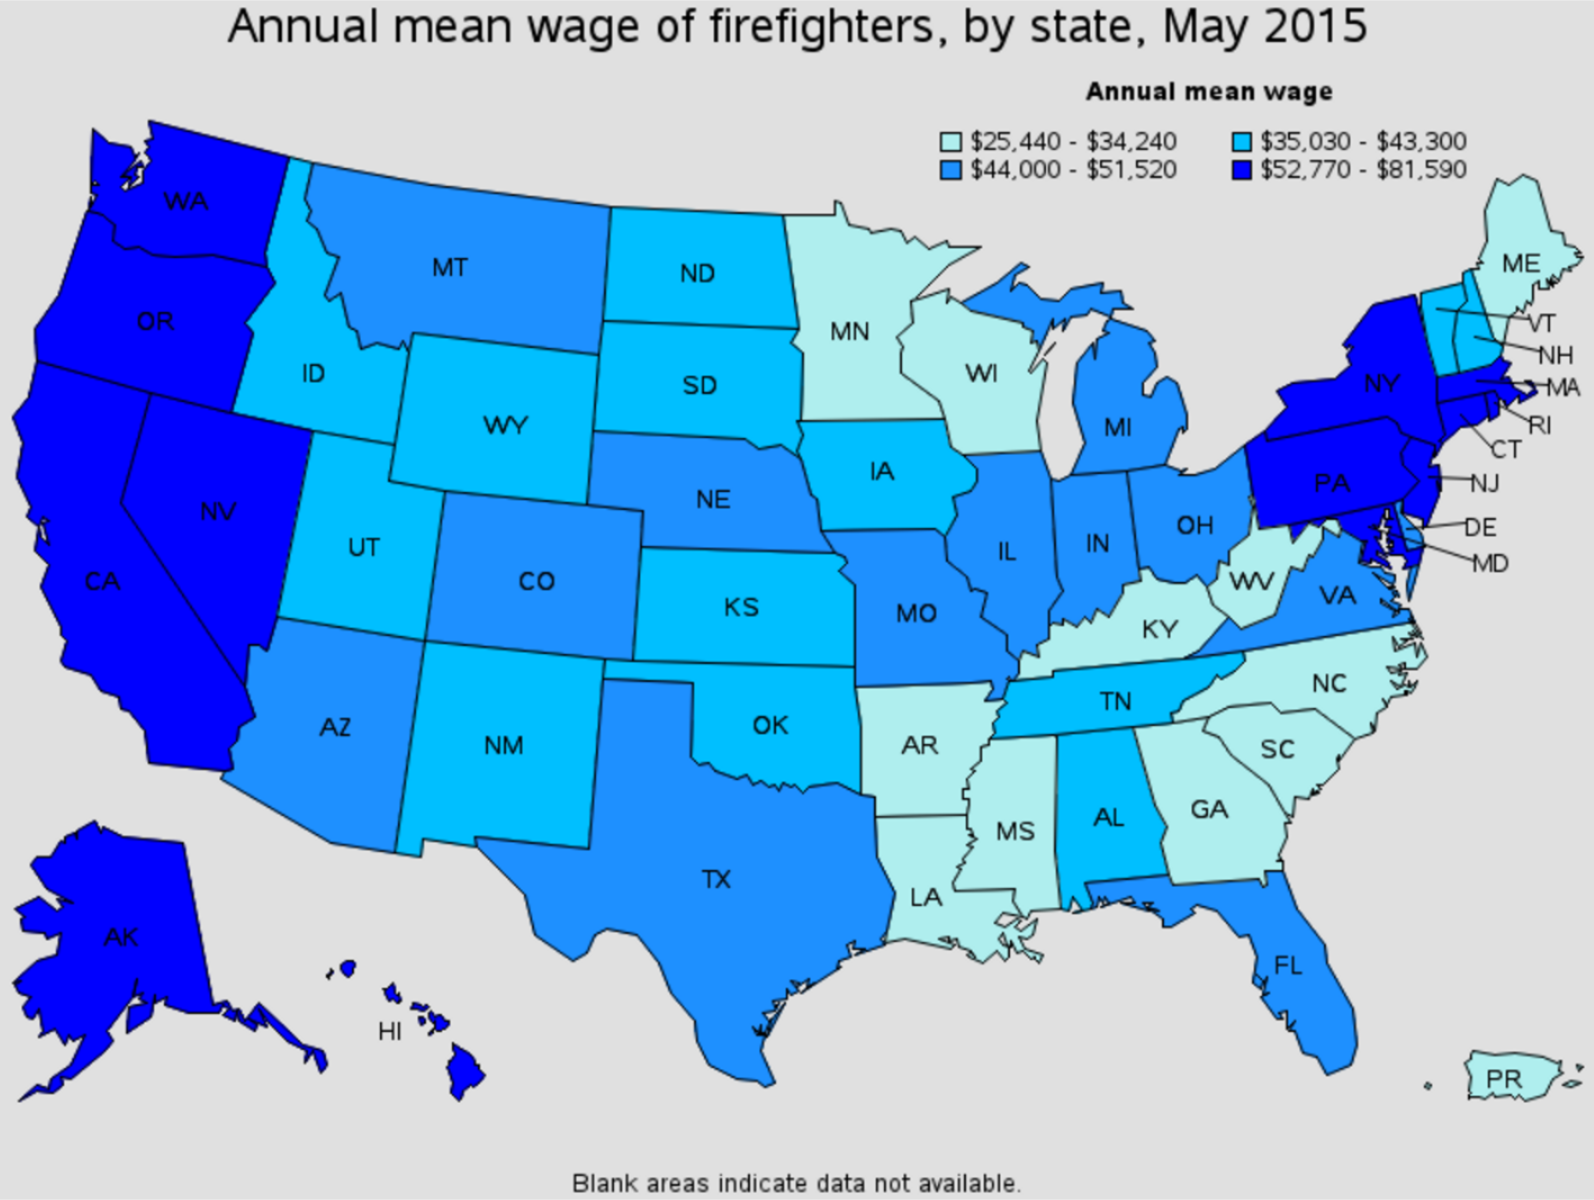 firefighter average salary by state Wymore Nebraska